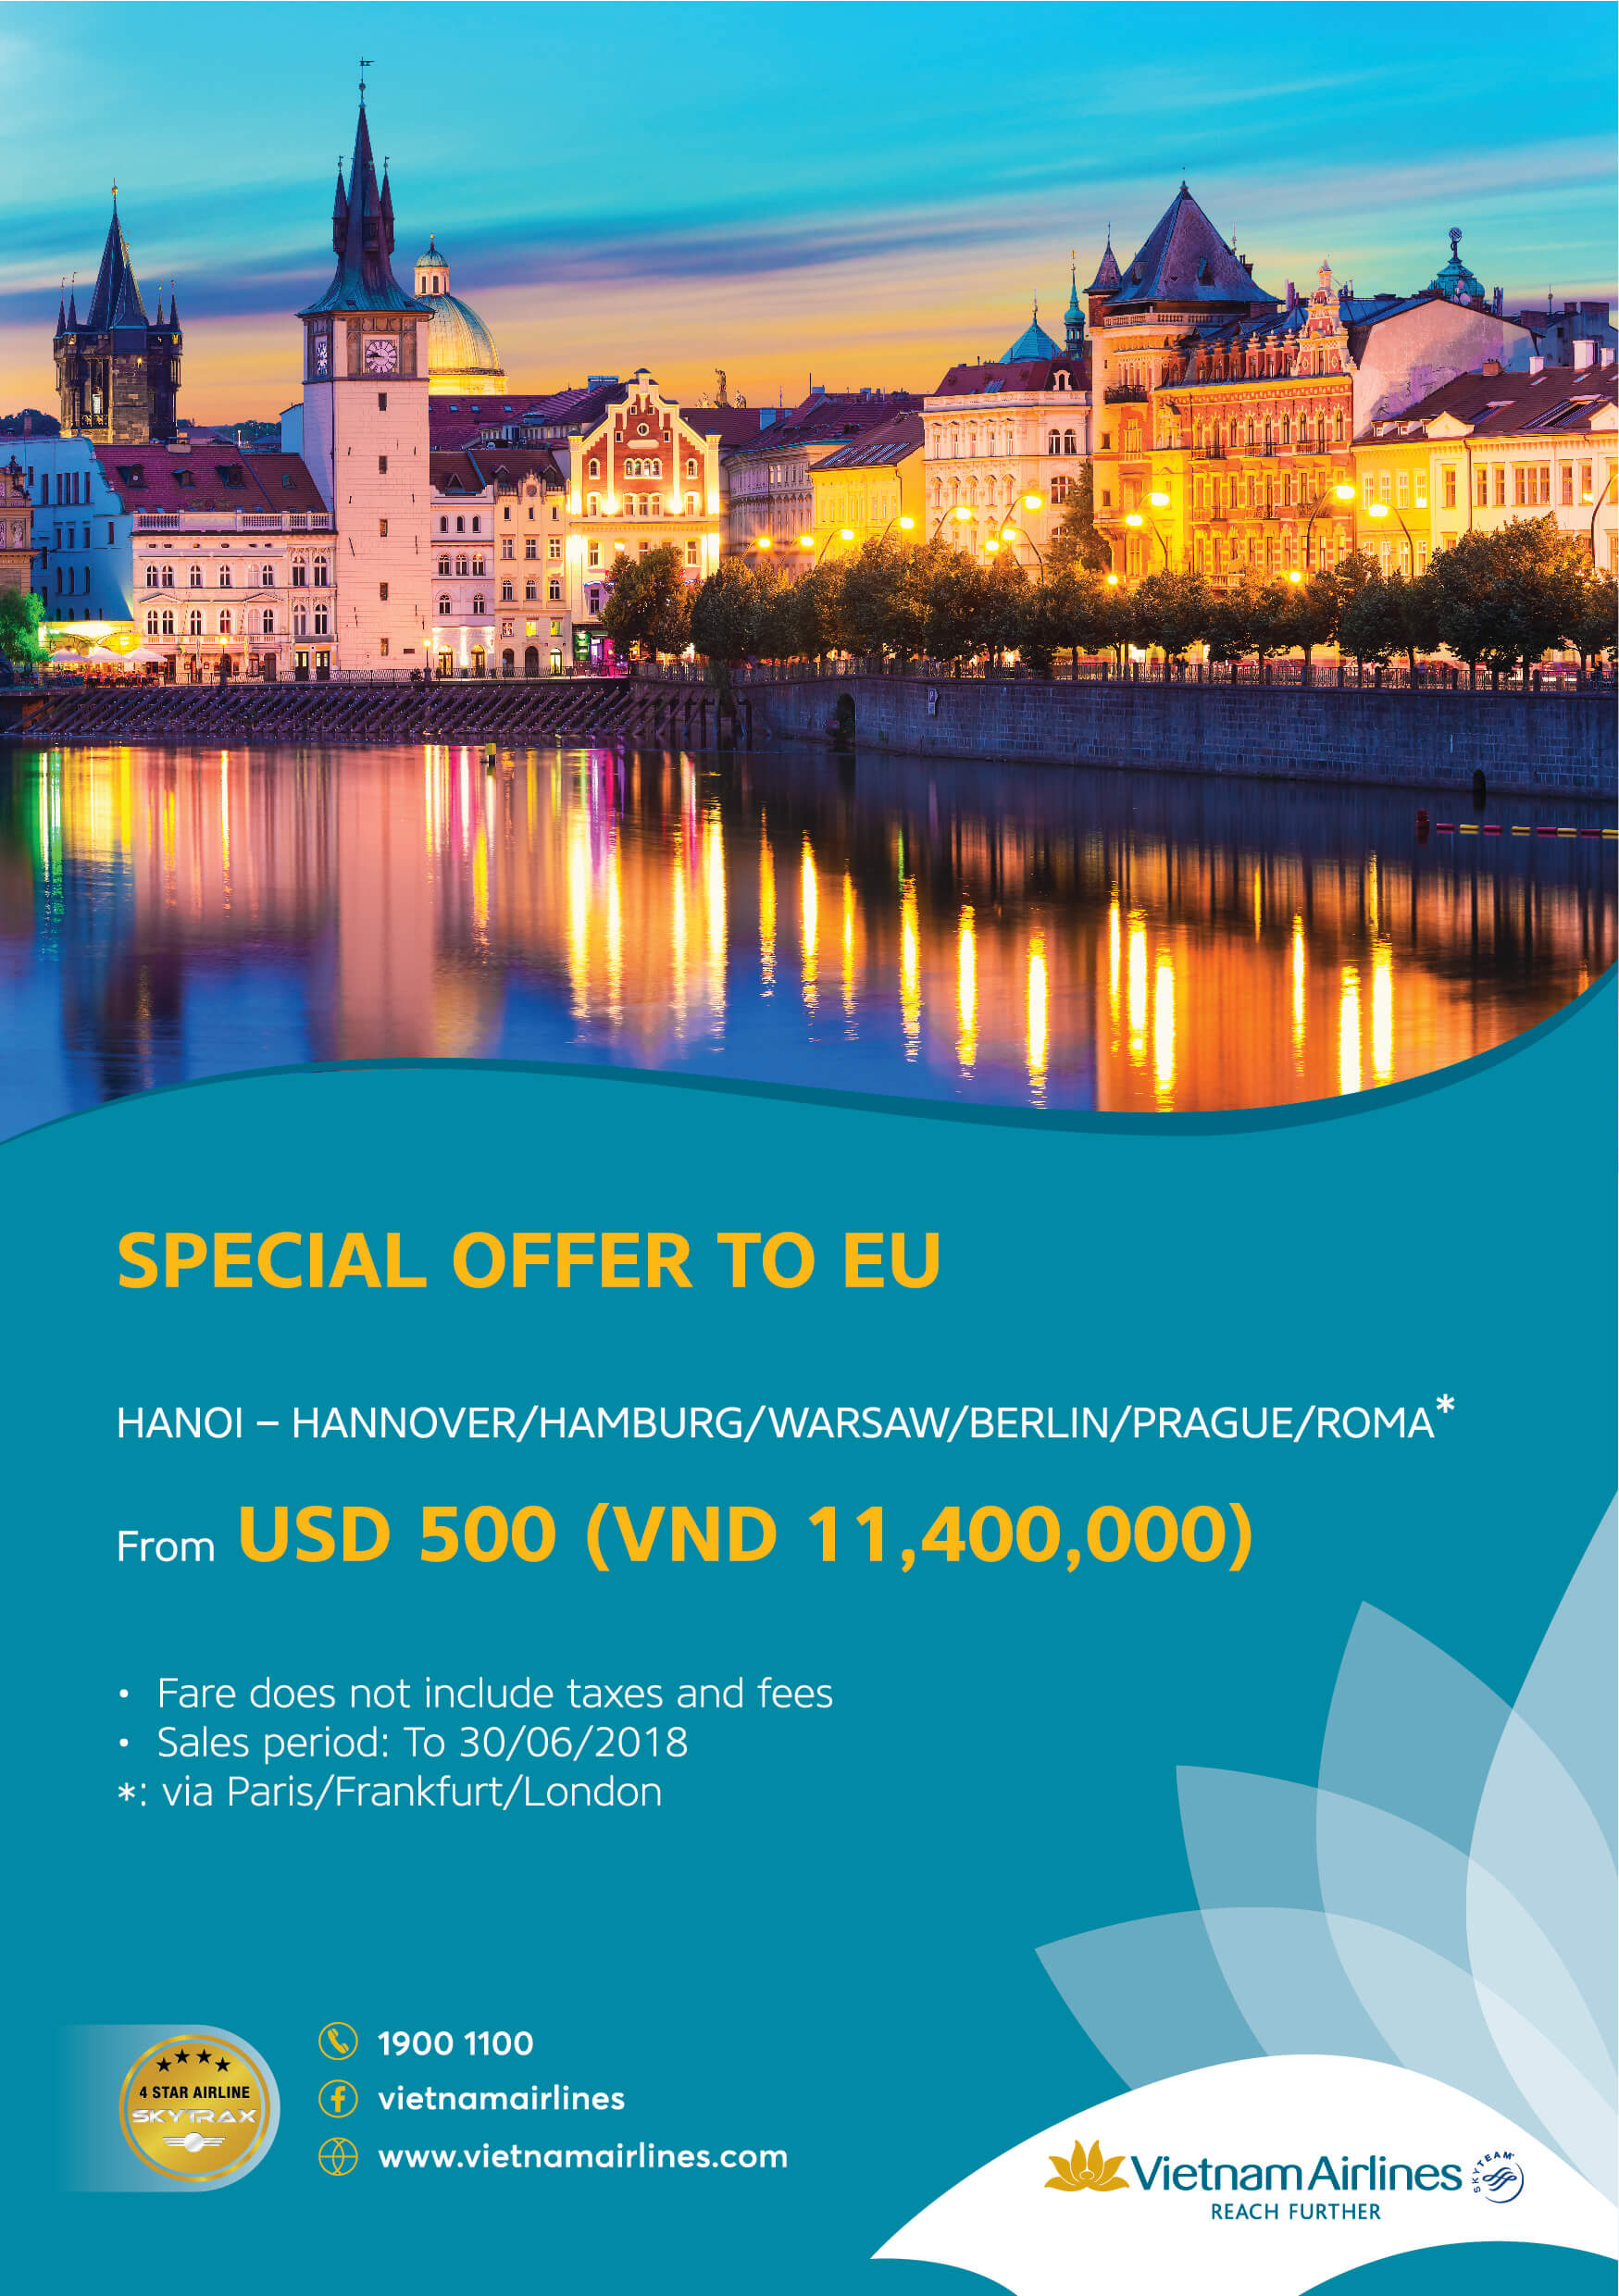 VIETNAM AIRLINES – SPECIAL OFFER TO EU